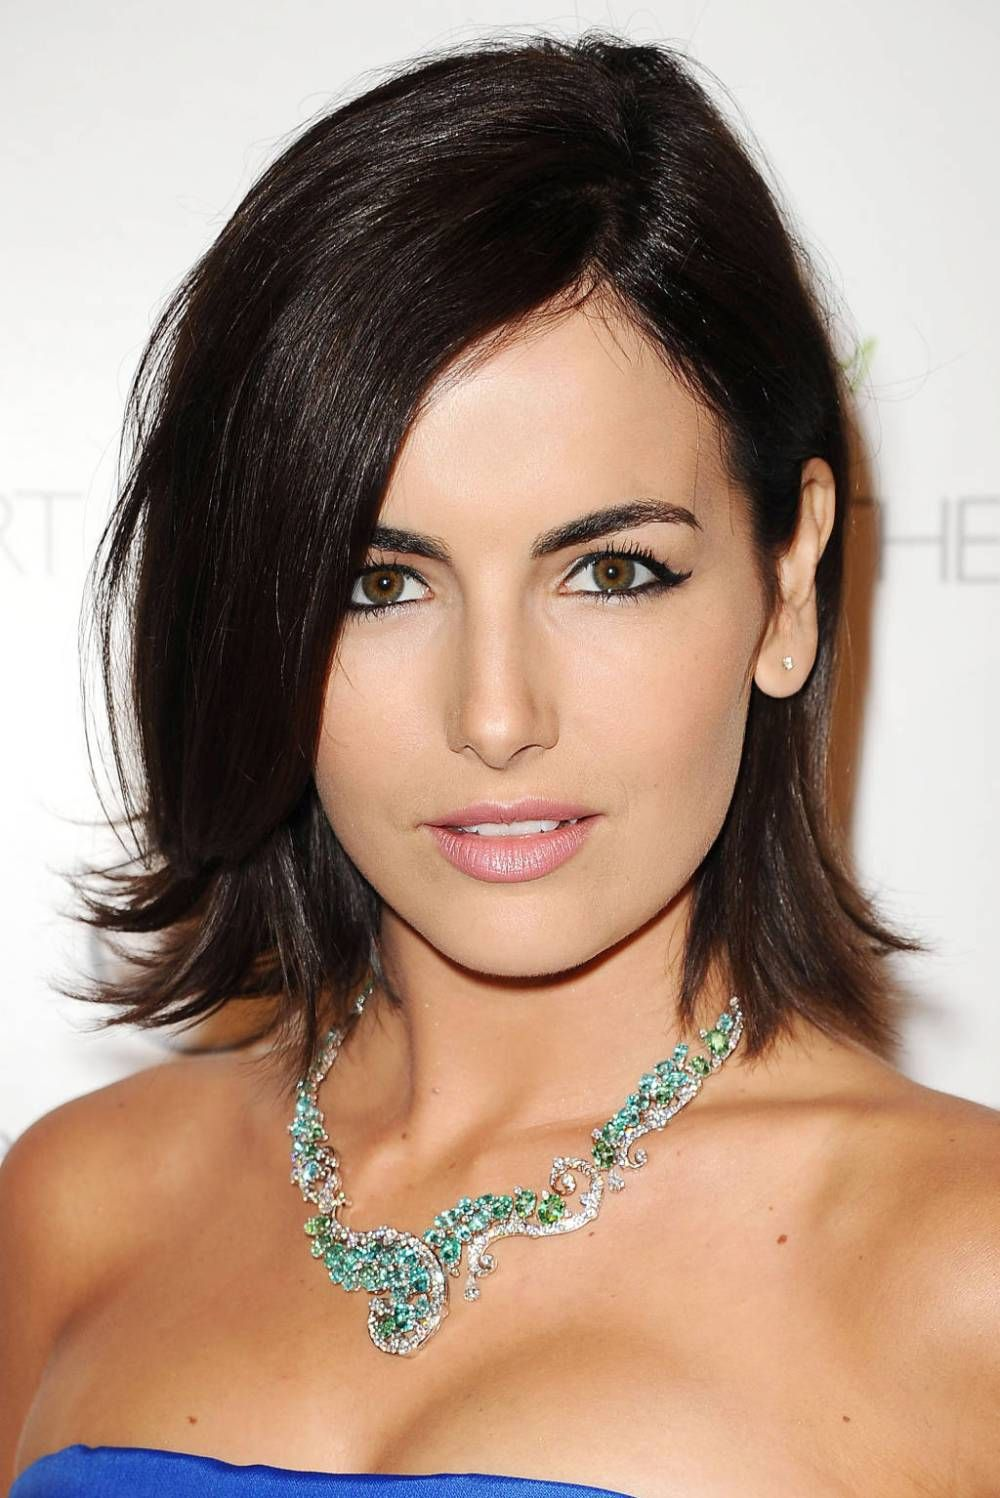 70 Winning Looks With Bob Haircuts For Fine Hair Pinterest